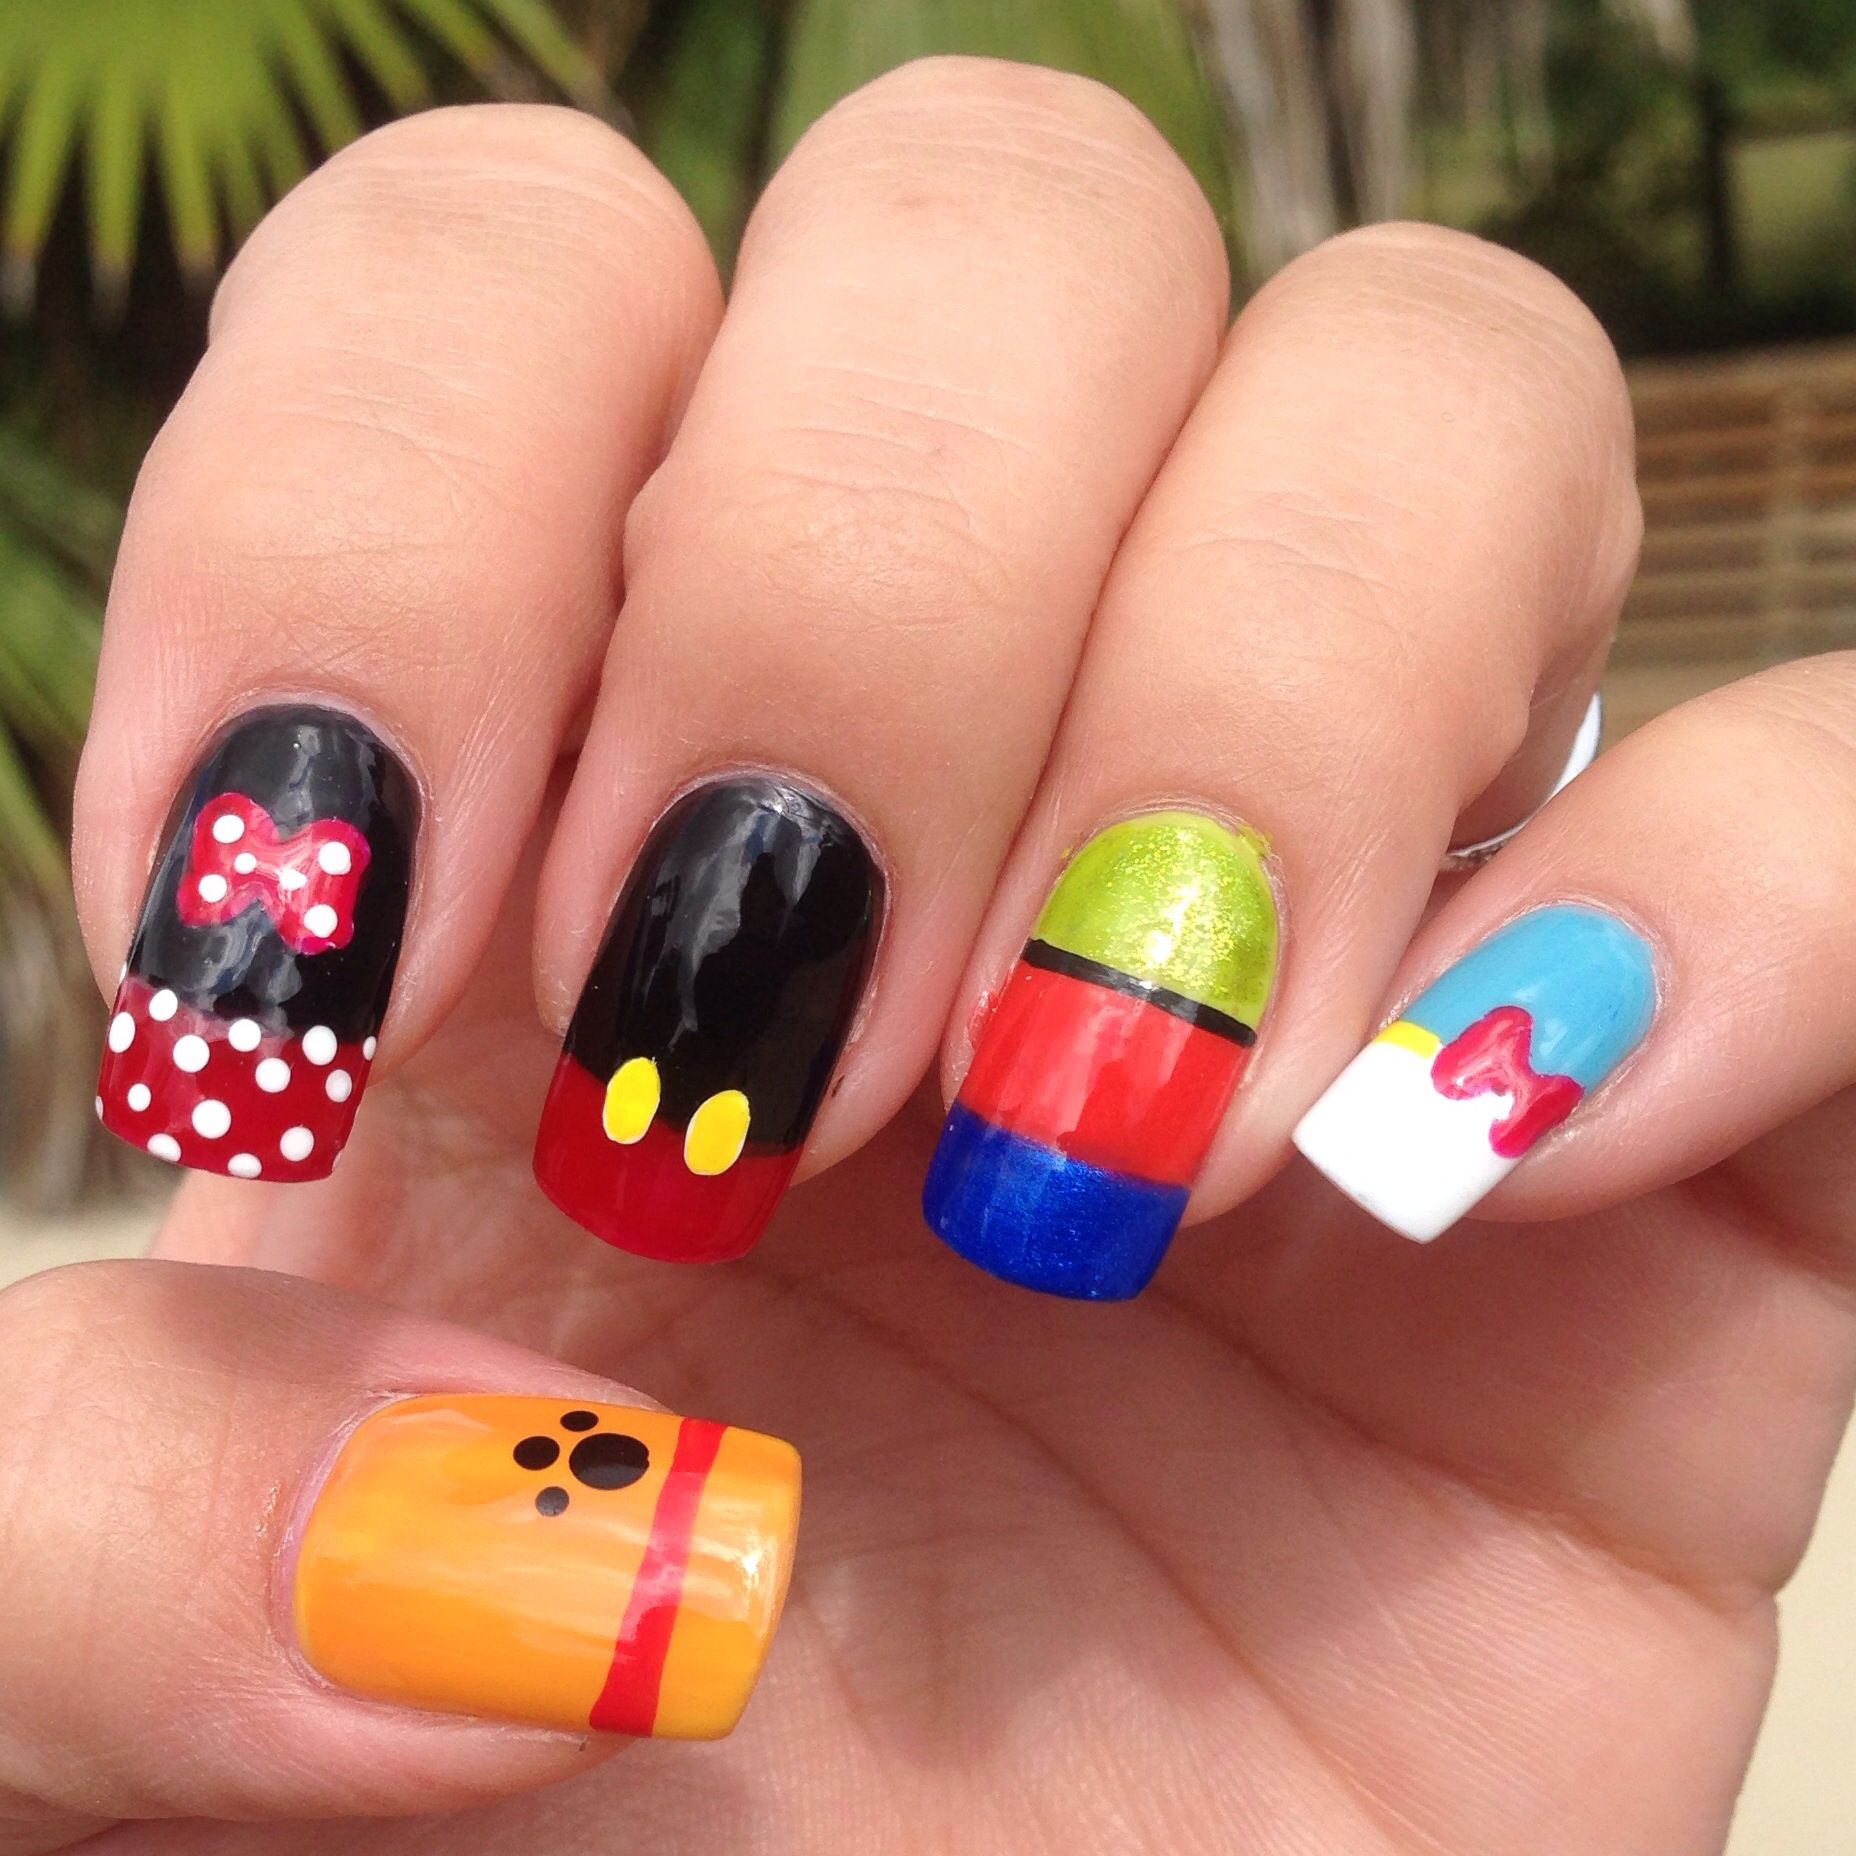 26 Disney Nail Art Designs Ideas: Disney Nails, Disney Nail Designs, Mickey Nails